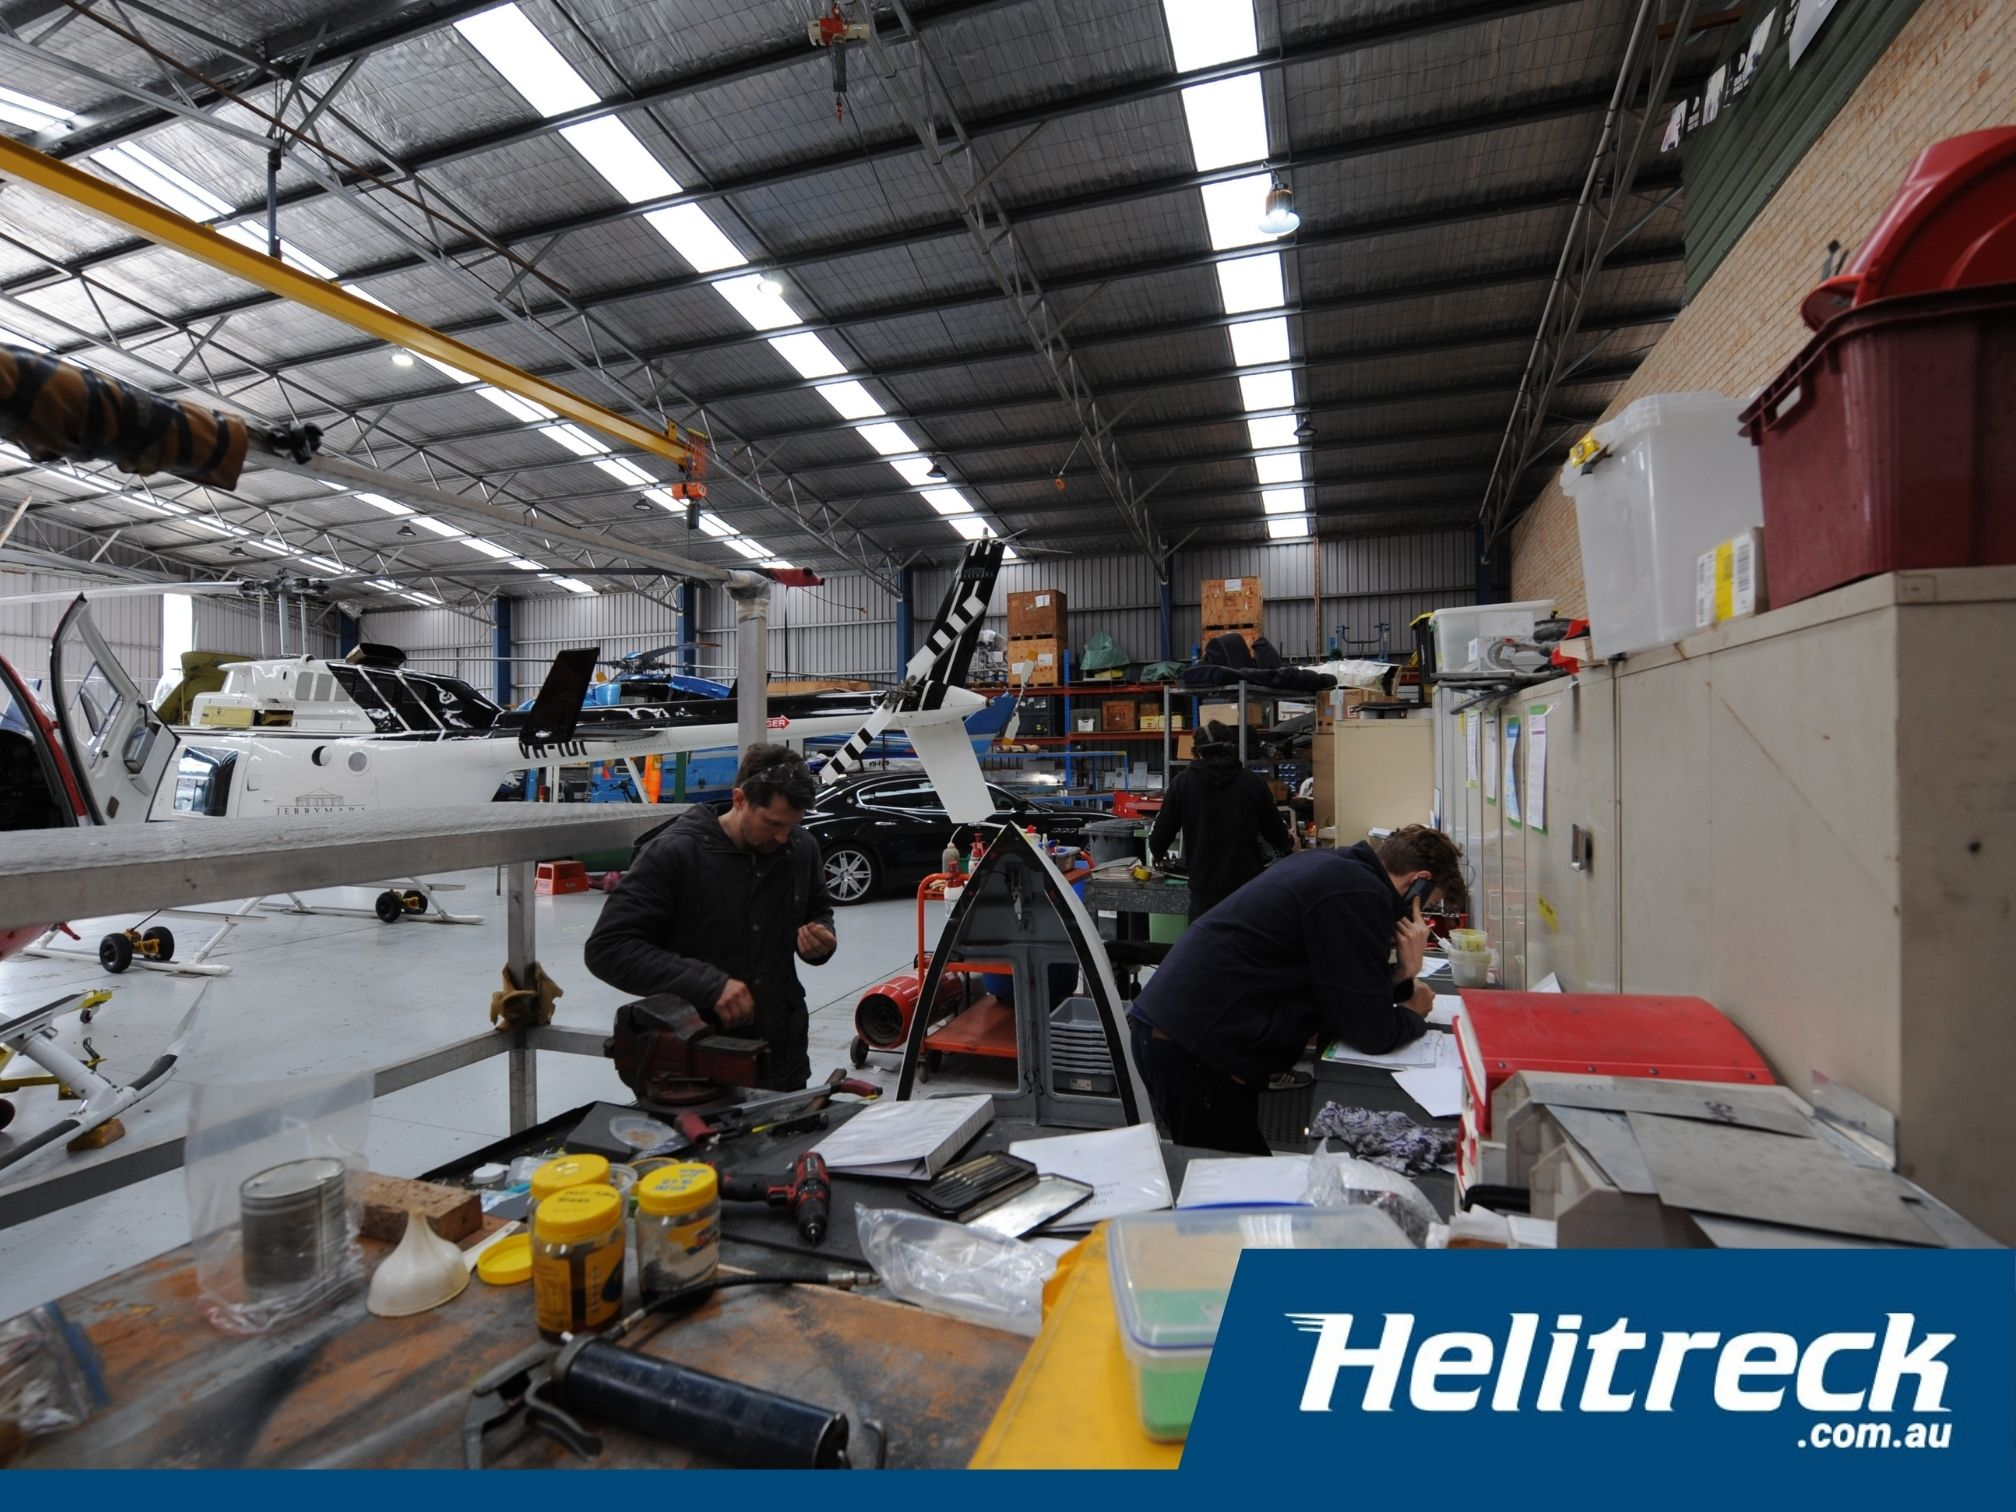 Helicopter-Maintenance-Helicopter-Engineering